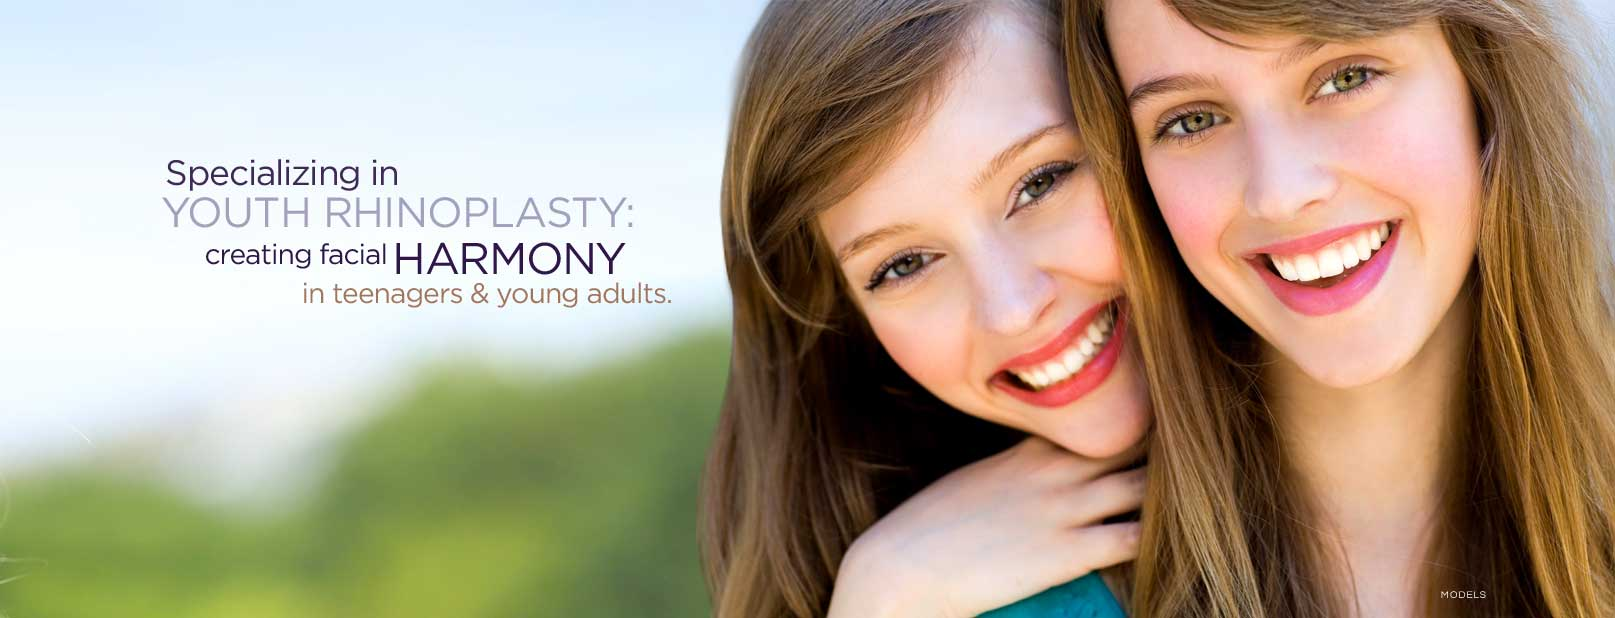 Youth Rhinoplasty header banner